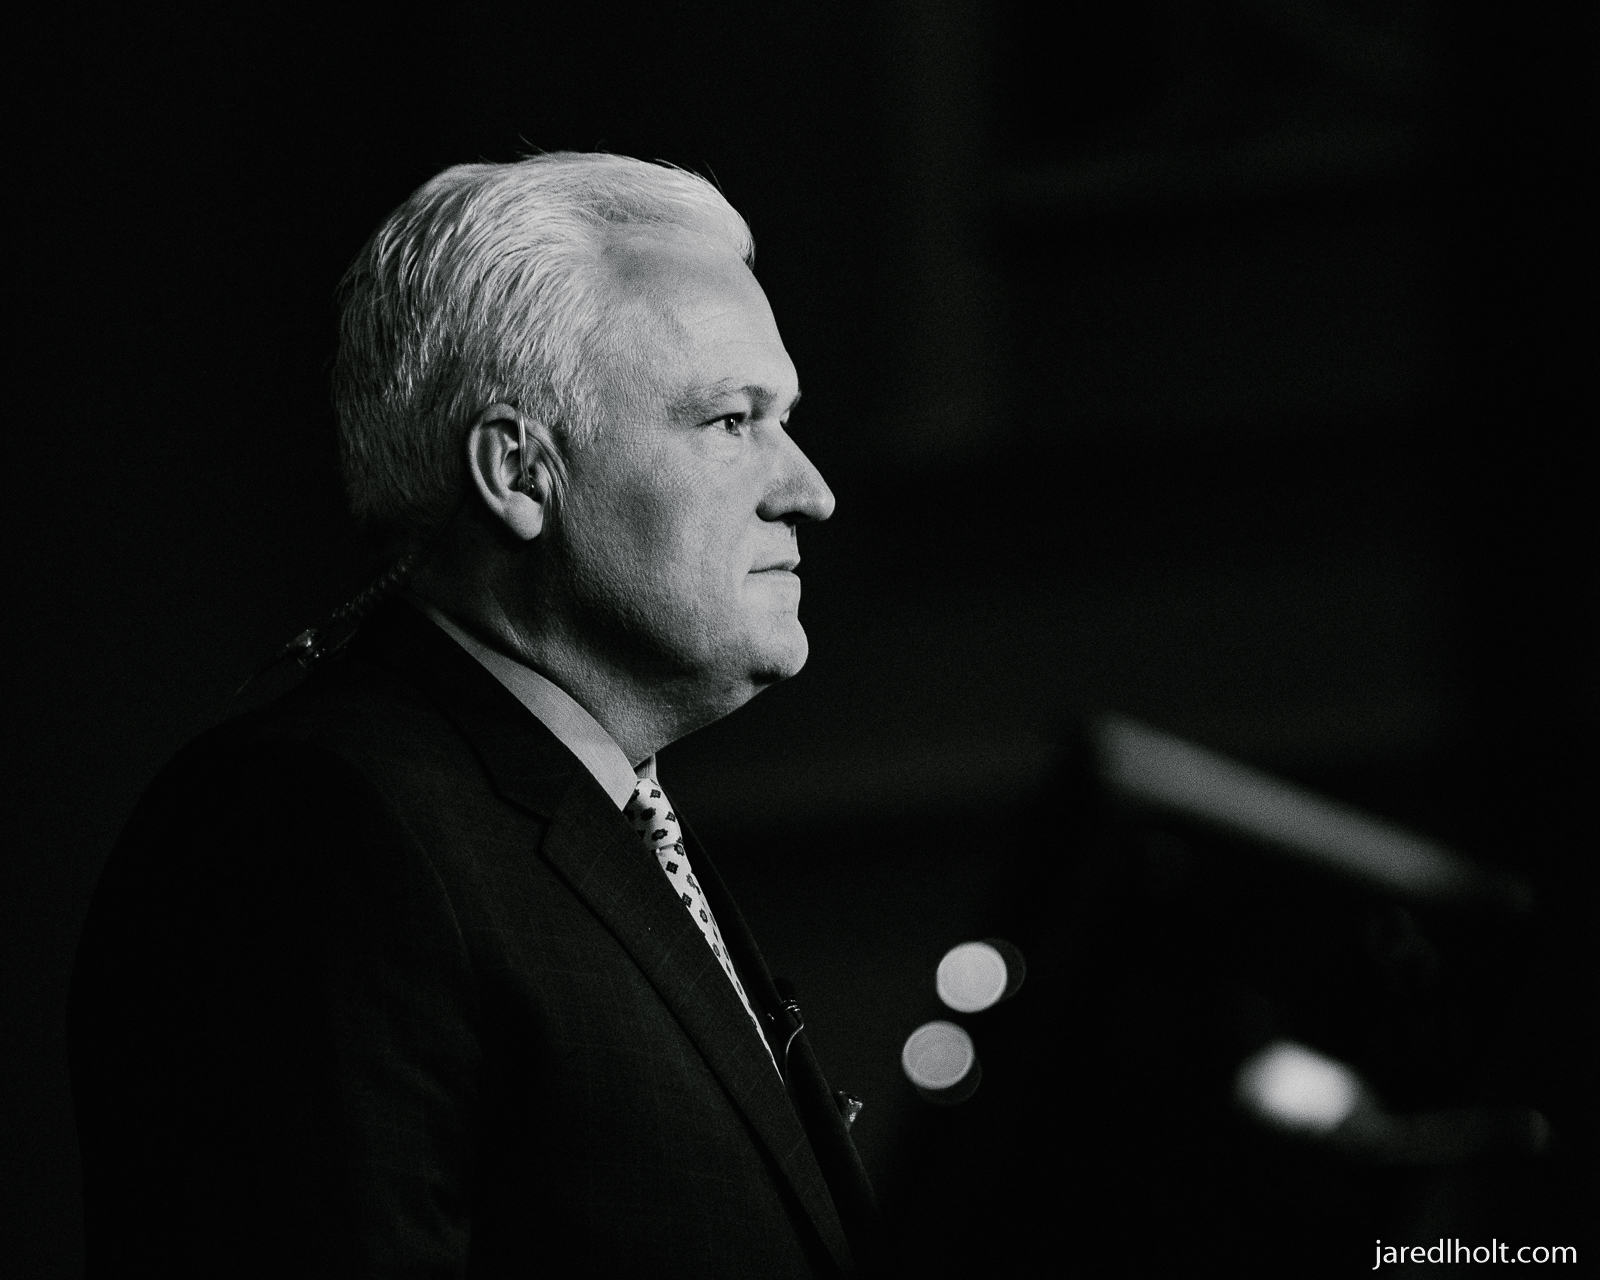 Matt Schlapp, chairman of the American Conservative Union